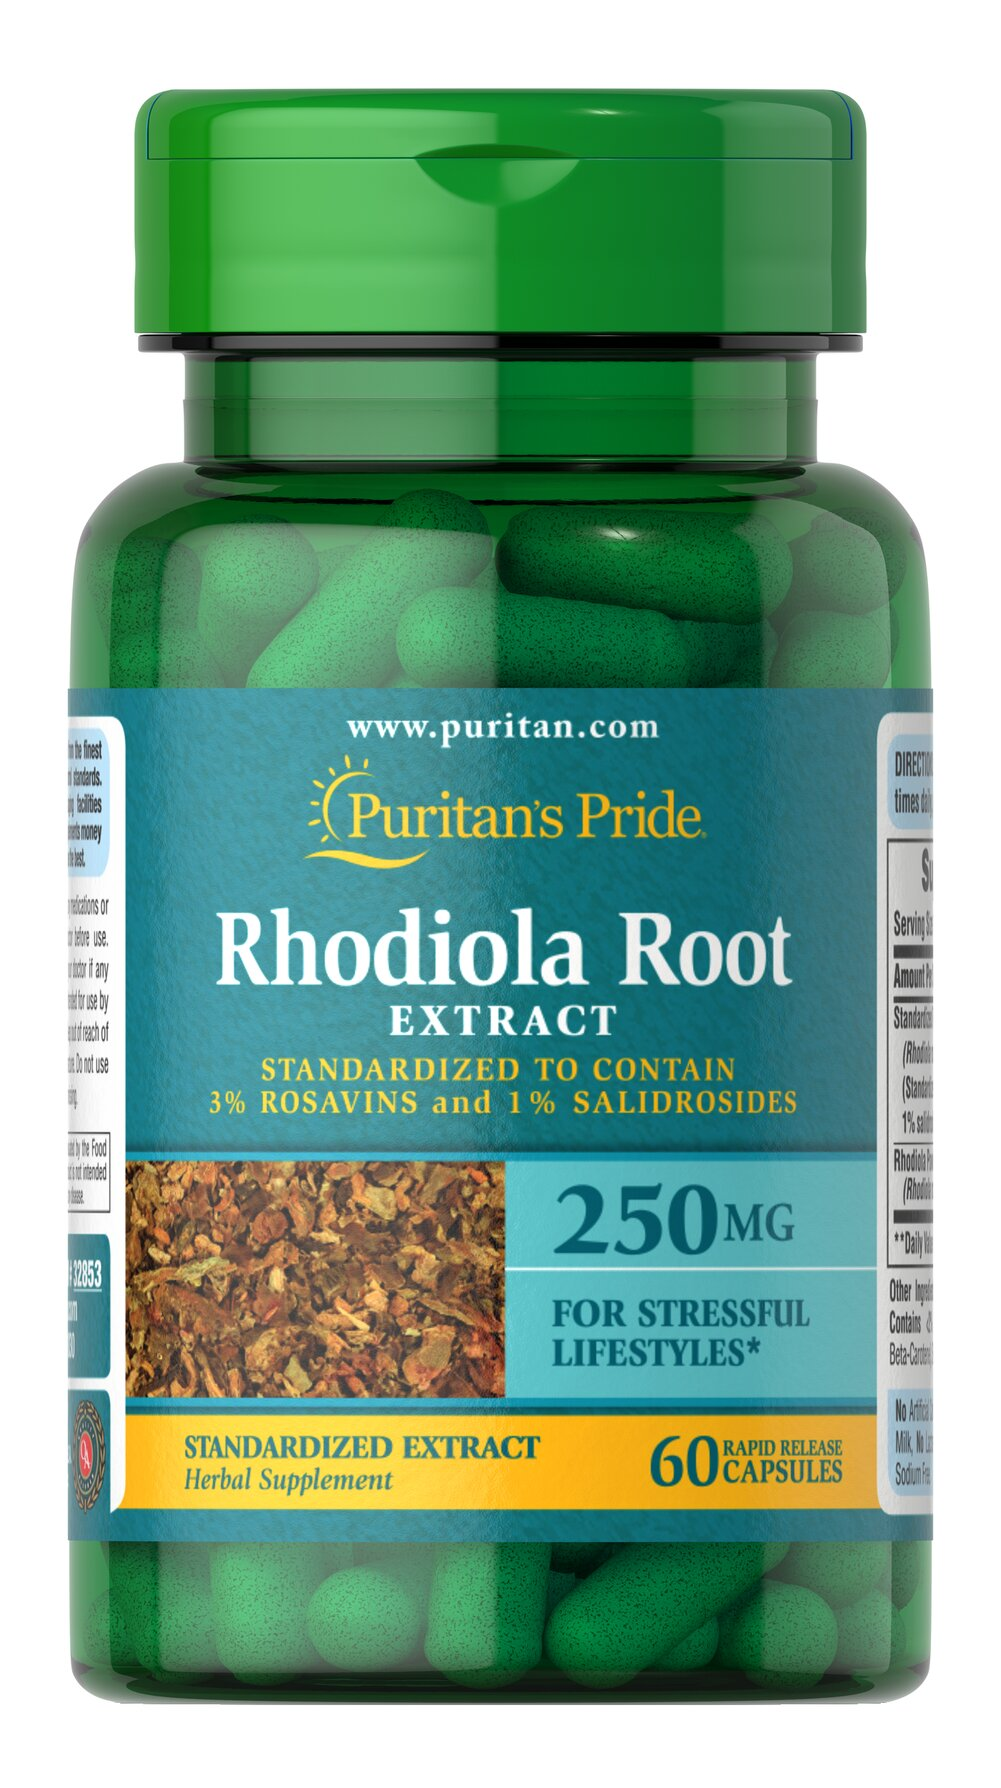 Rhodiola Standardized Extract 250 mg  60 Capsules 250 mg $21.99